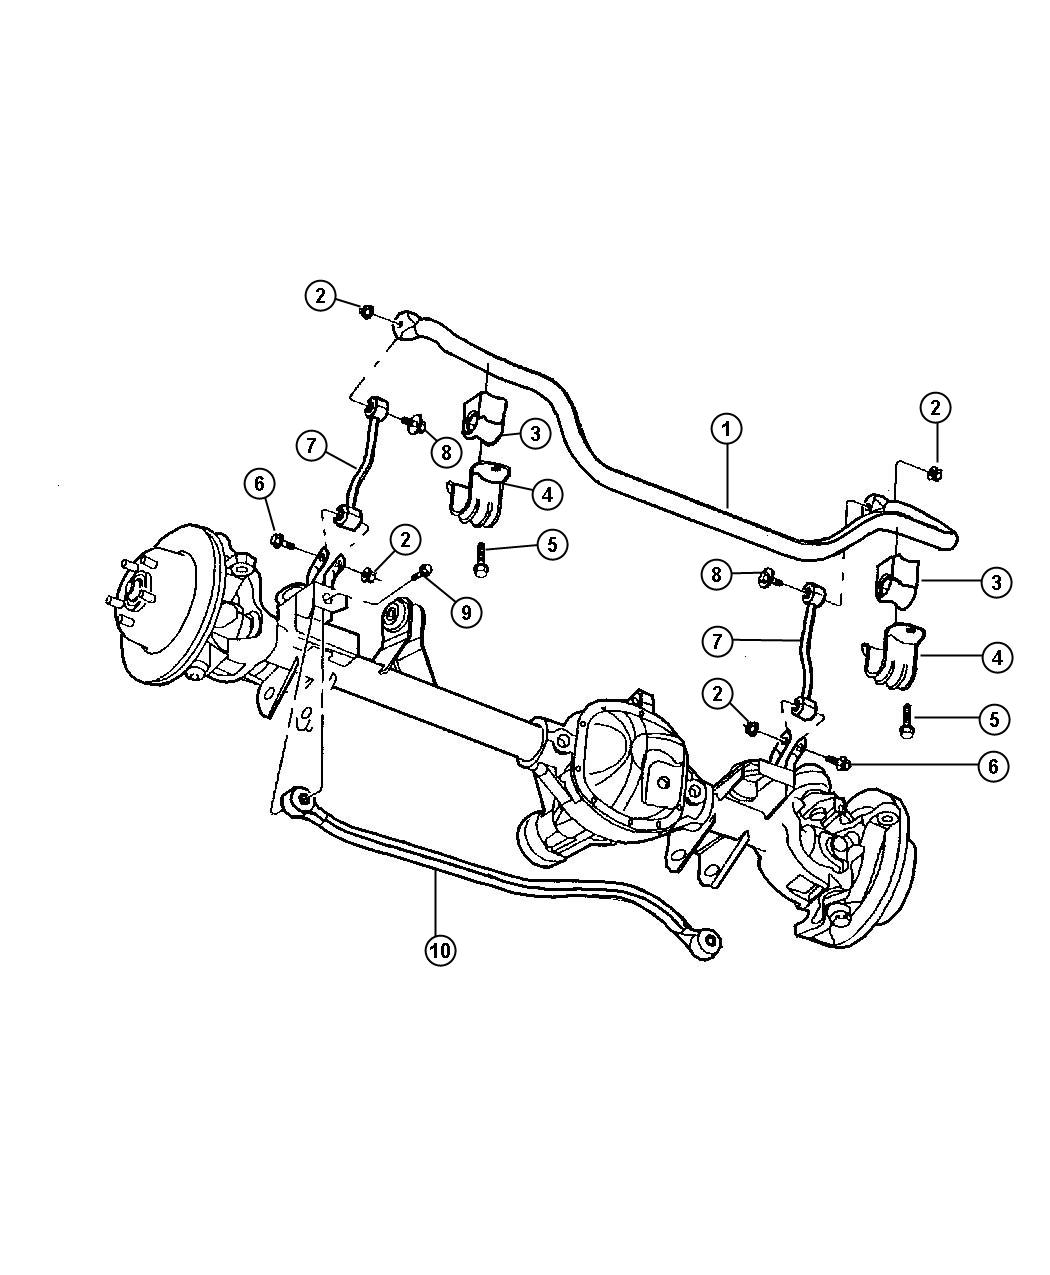 Mercedes C230 Parts Diagram. Mercedes. Auto Wiring Diagram